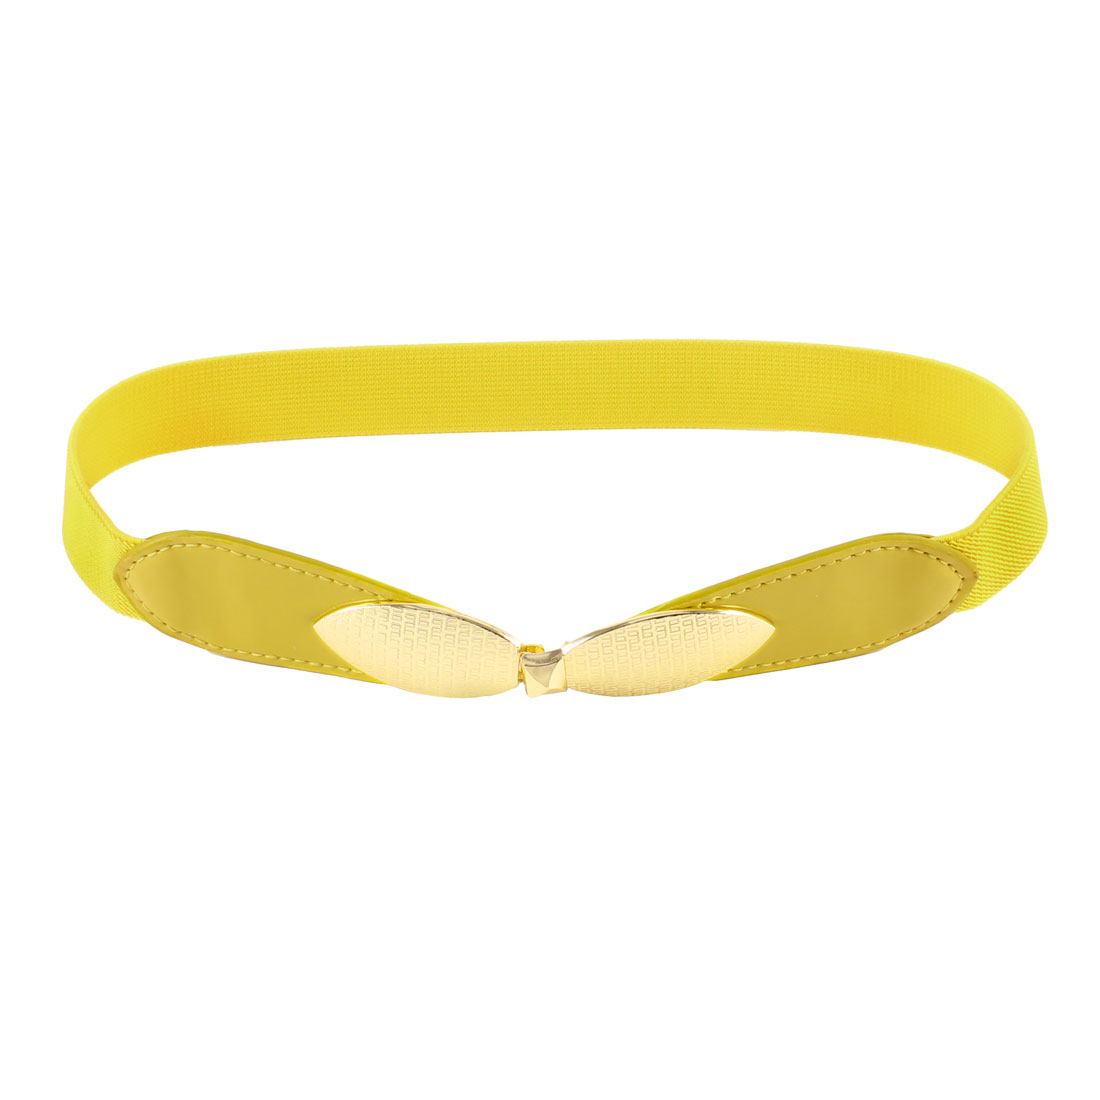 Woman Interlock Closure Faux Leather Thin Skinny Waistband Waist Belt Yellow